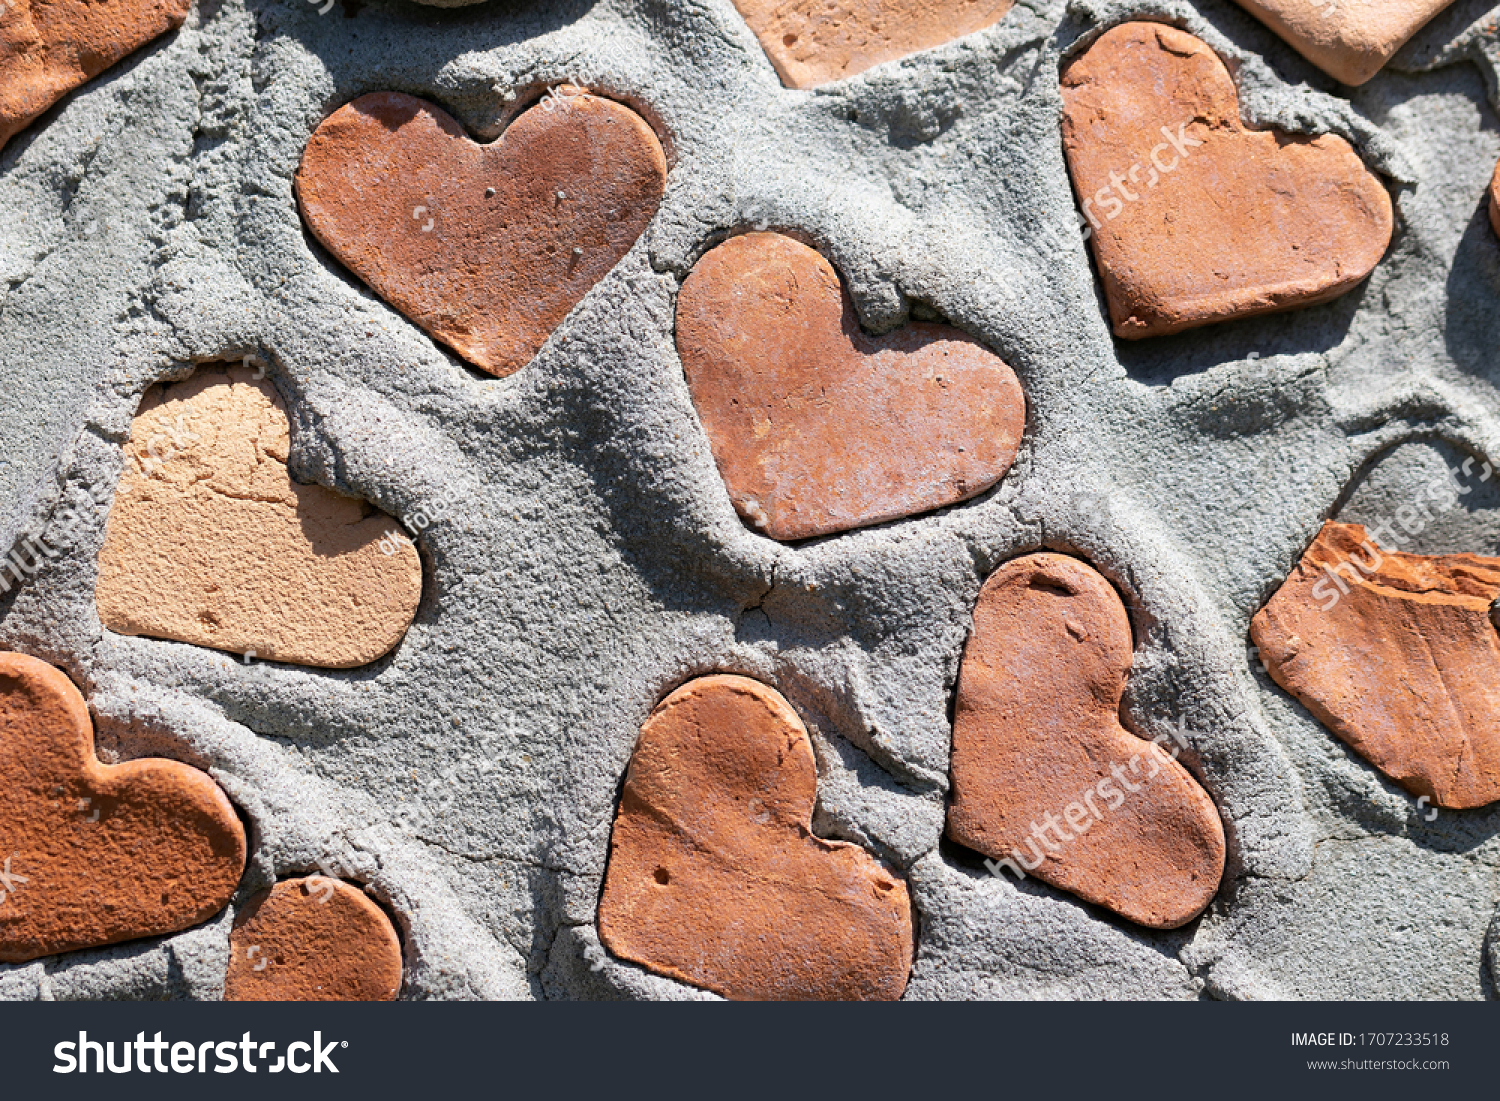 stock-photo-background-wall-with-clay-po